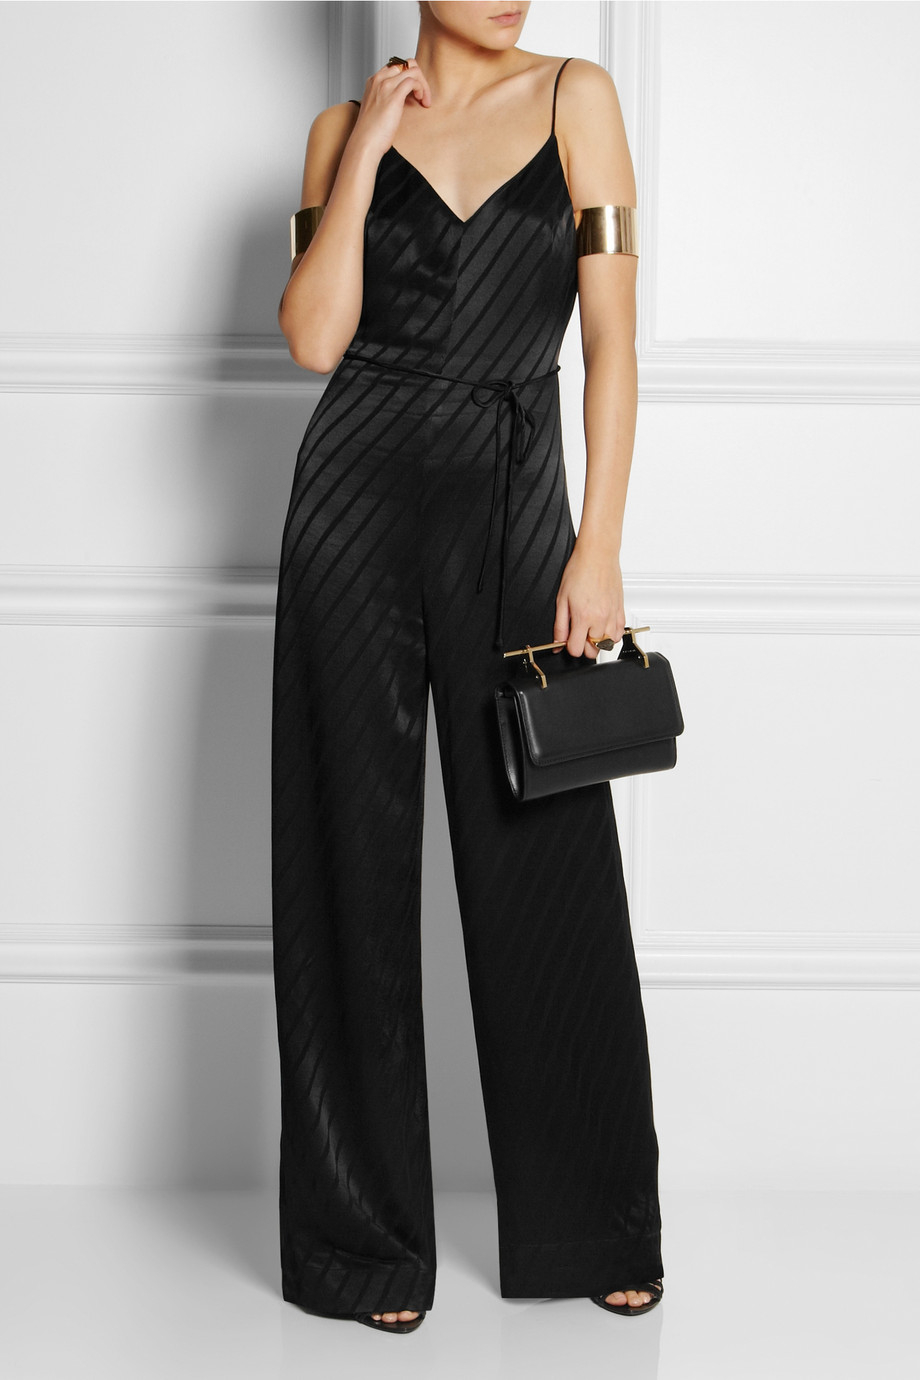 Lyst Topshop Striped Satin Jumpsuit In Black